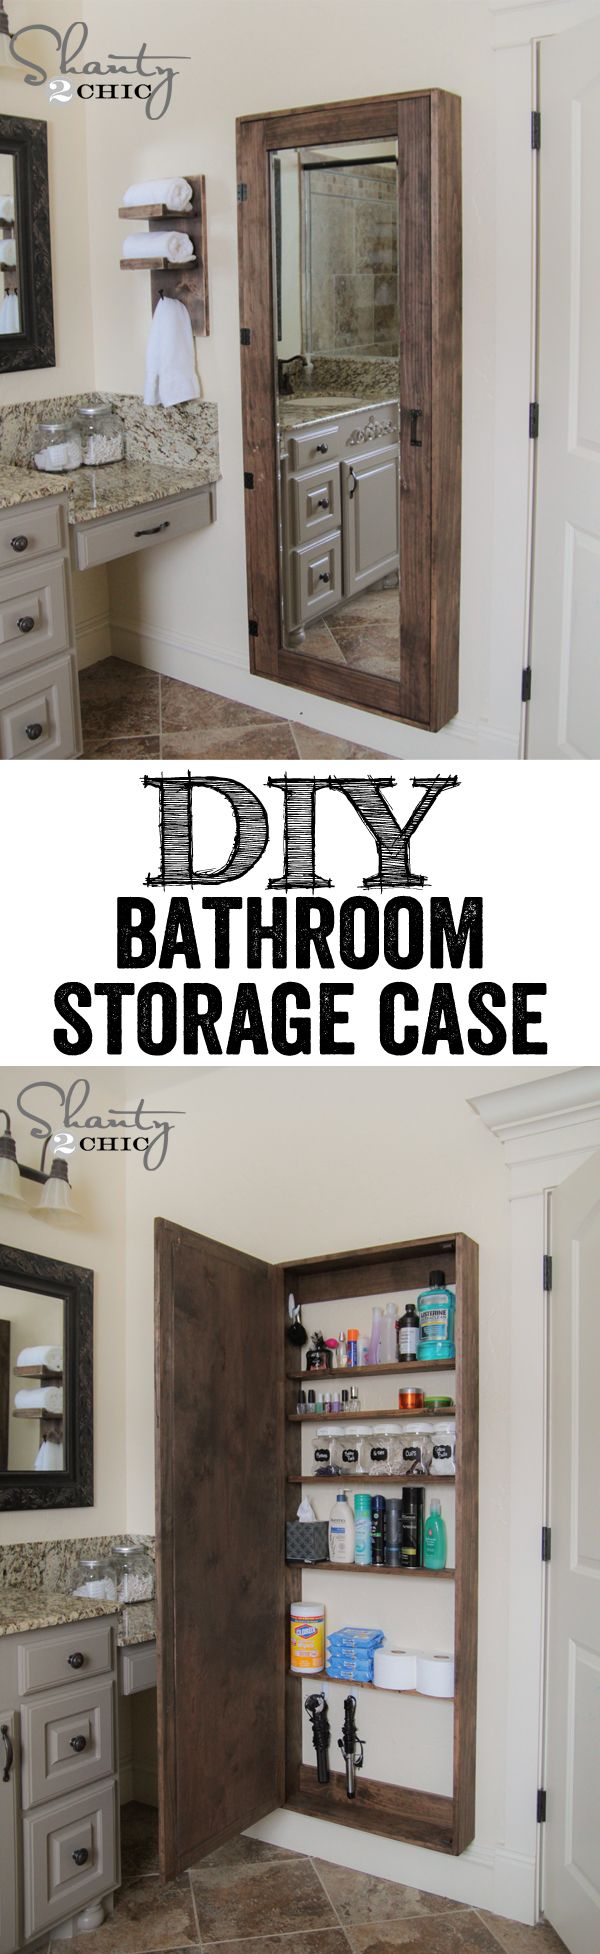 DIY Bathroom Organization Cabinet with full length mirror…. LOVE THIS IDEA! www.shanty-2-chic.com: Bathroom Diy Ideas, Storage Mirror, Bathroom Organizations, Organizations Cabinets, Diy Bathroom, Bathroom Organization Cabinet, Bathroom Cabinets Ideas, Diy Organization, Full Length Mirrors